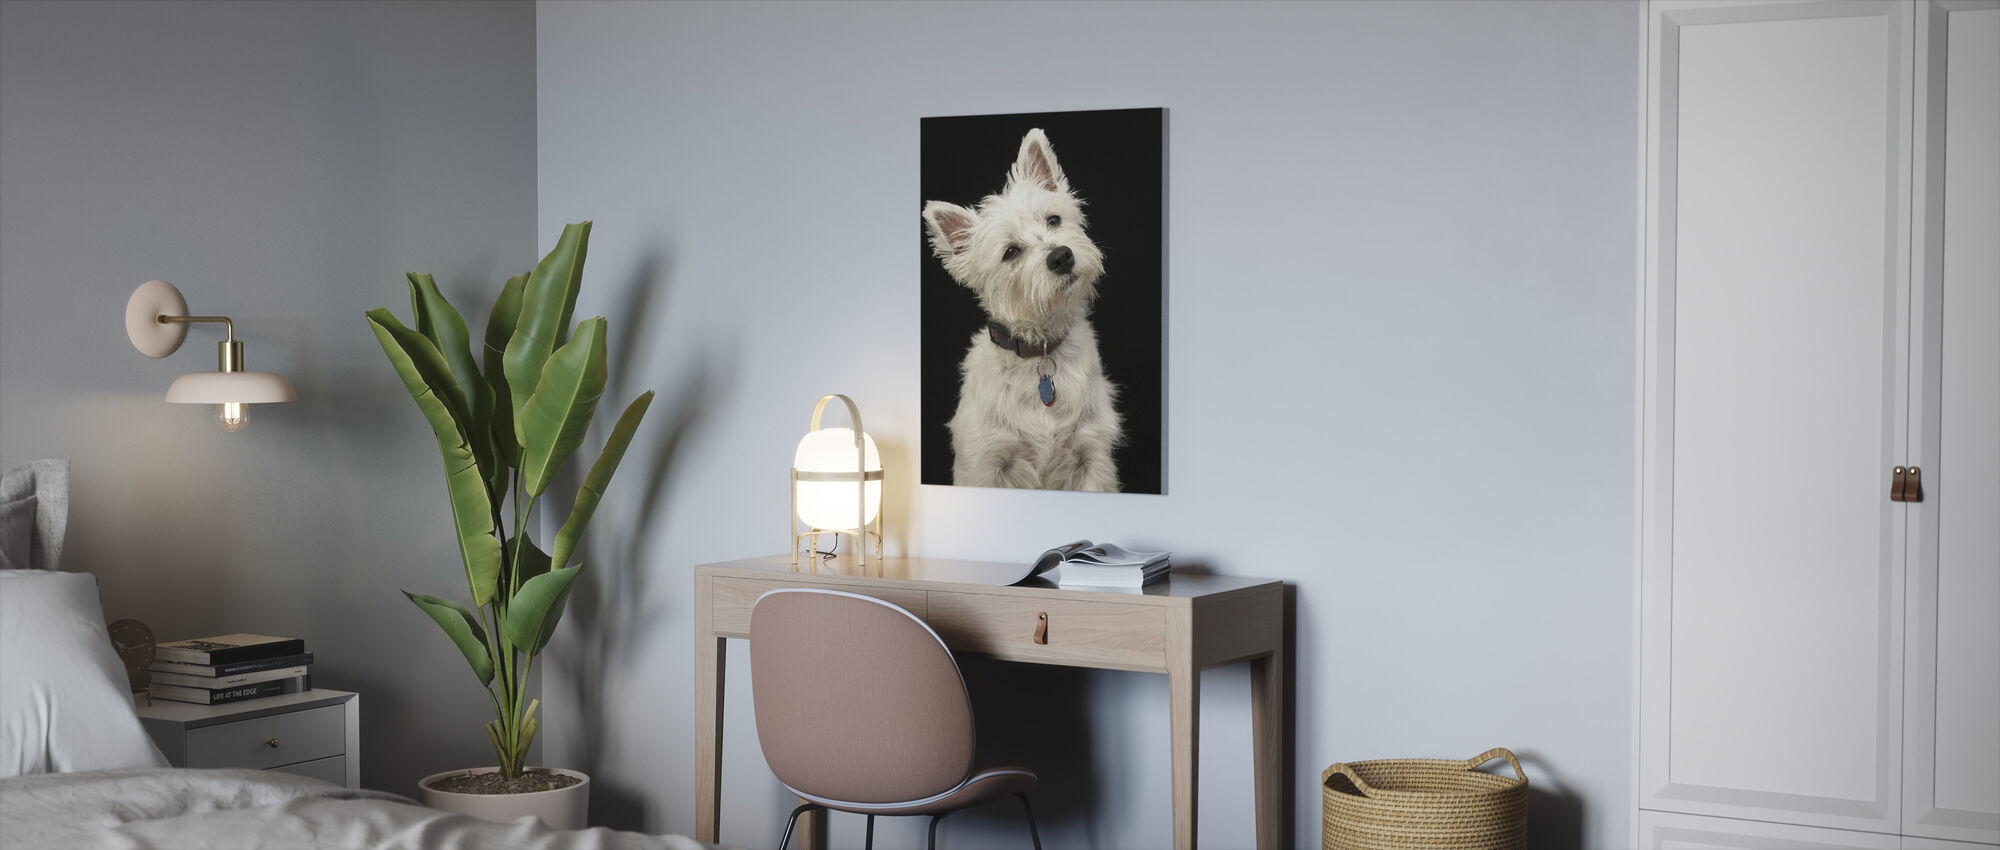 West Highland Terrier - Canvas print - Office